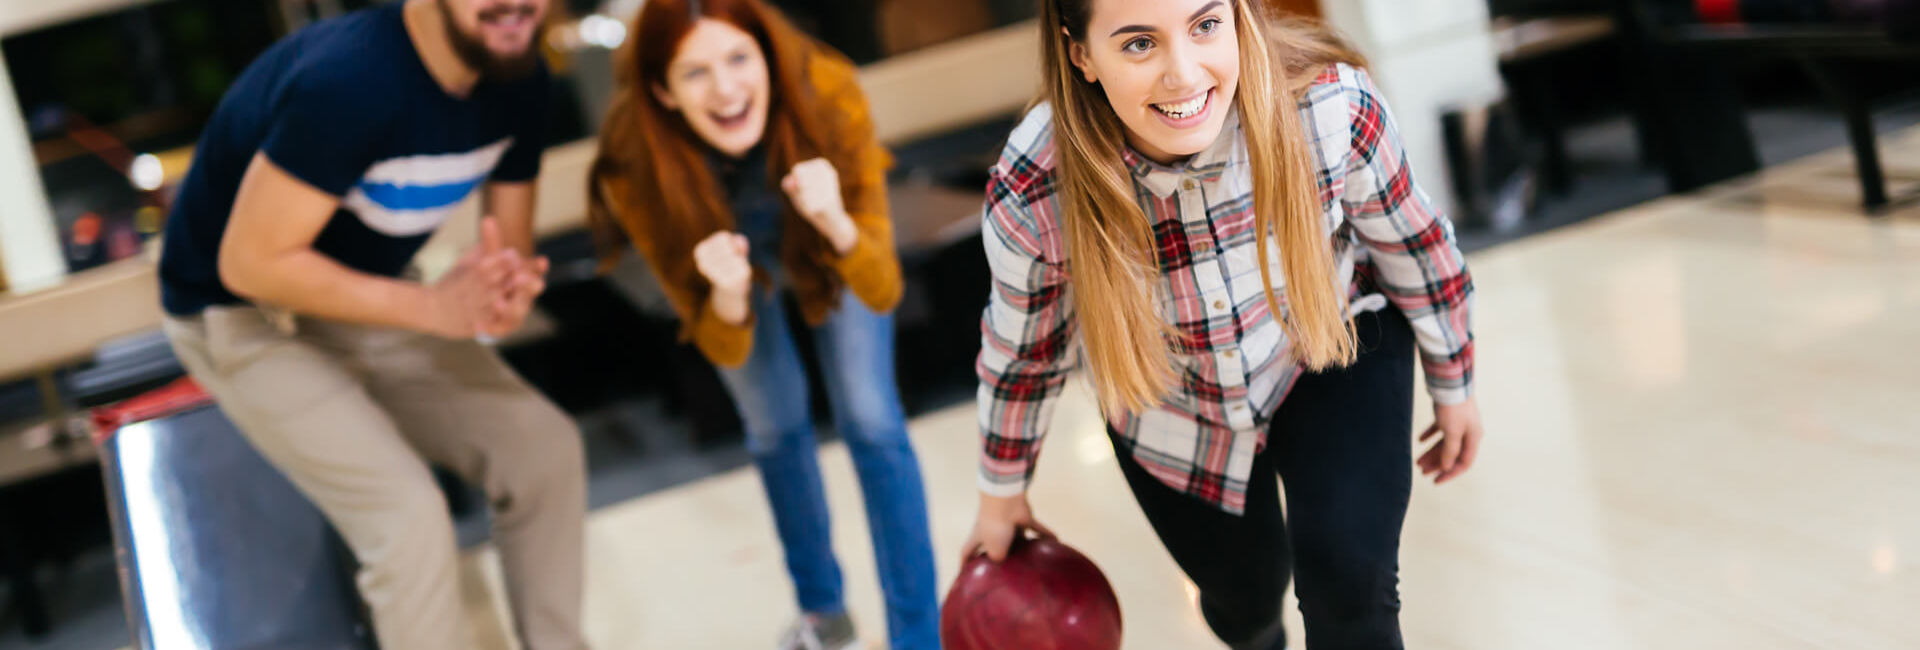 Female bowling while friends cheering